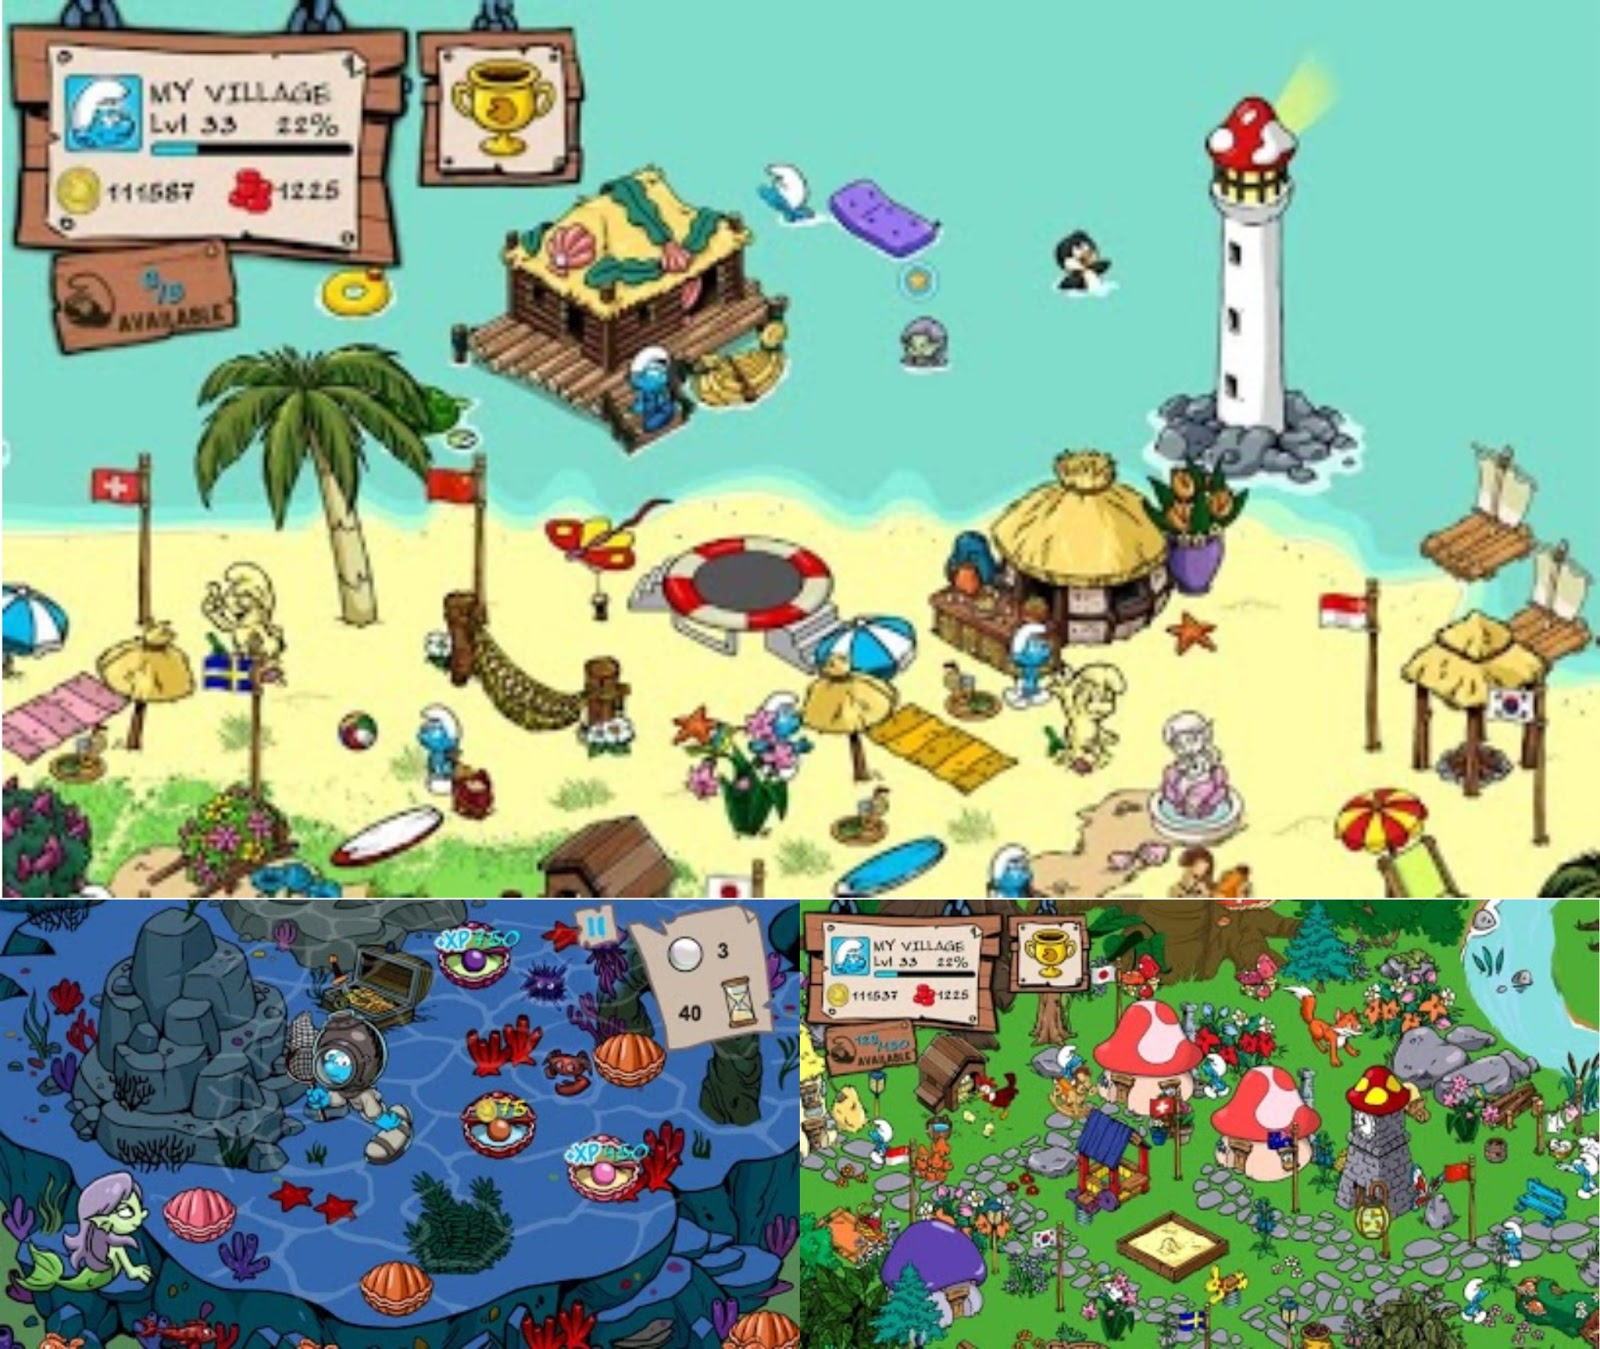 Link Download Smurfs Village Apk Android